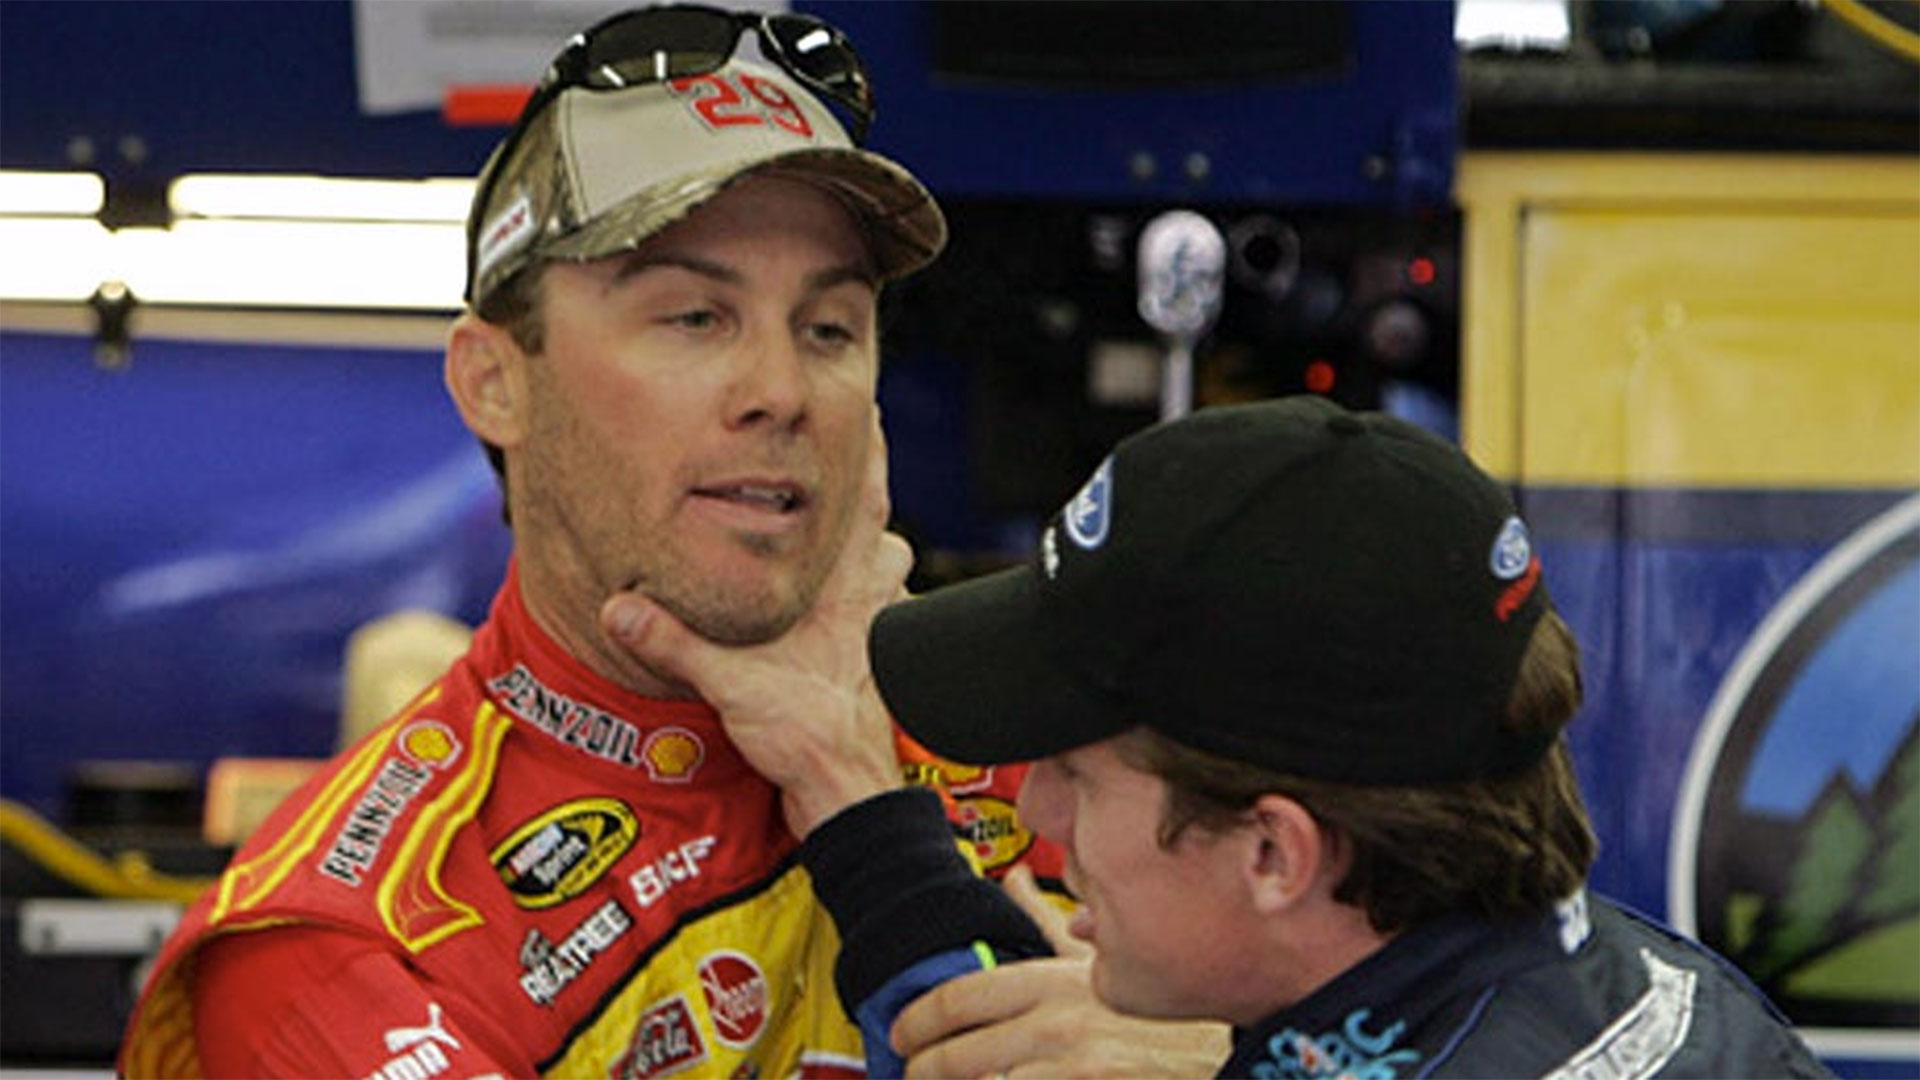 Kevin Harvick And: Kevin Harvick On Carl Edwards: 'There's (no) Love Lost